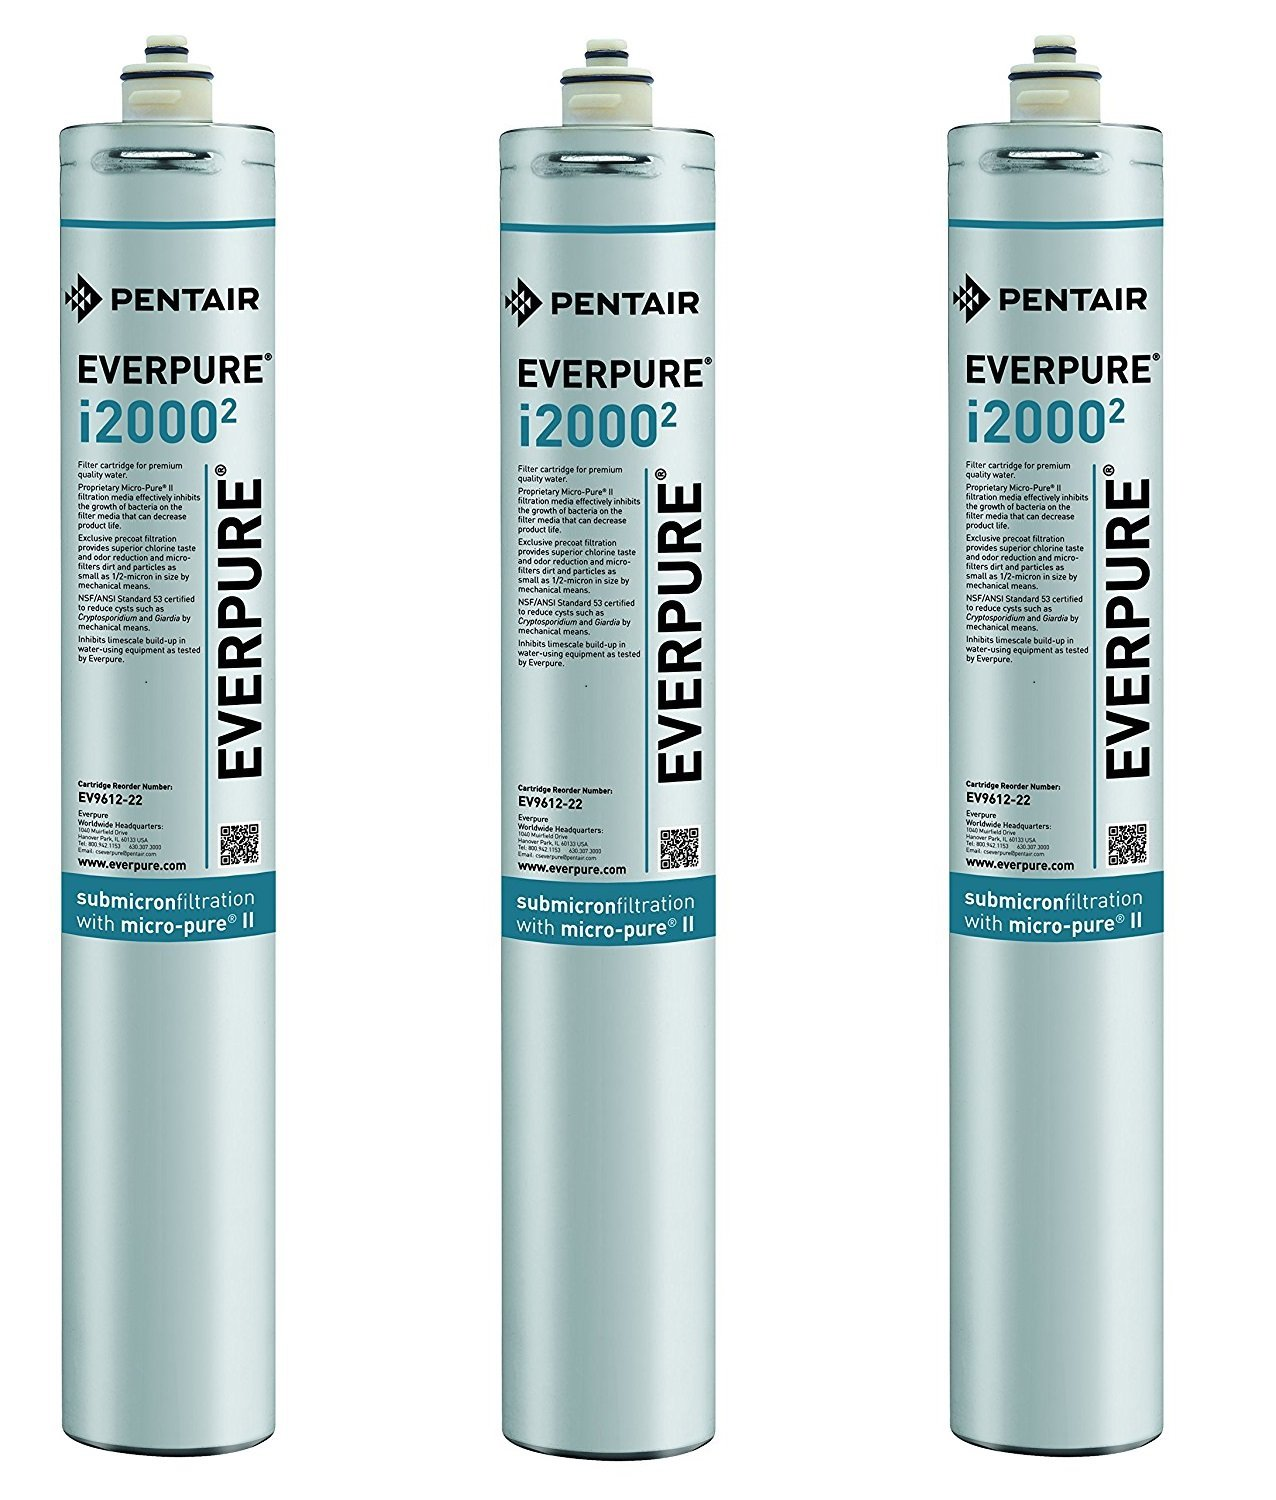 Everpure EV9612-22 i2000^2 Filter Cartridge (Pack of 3)